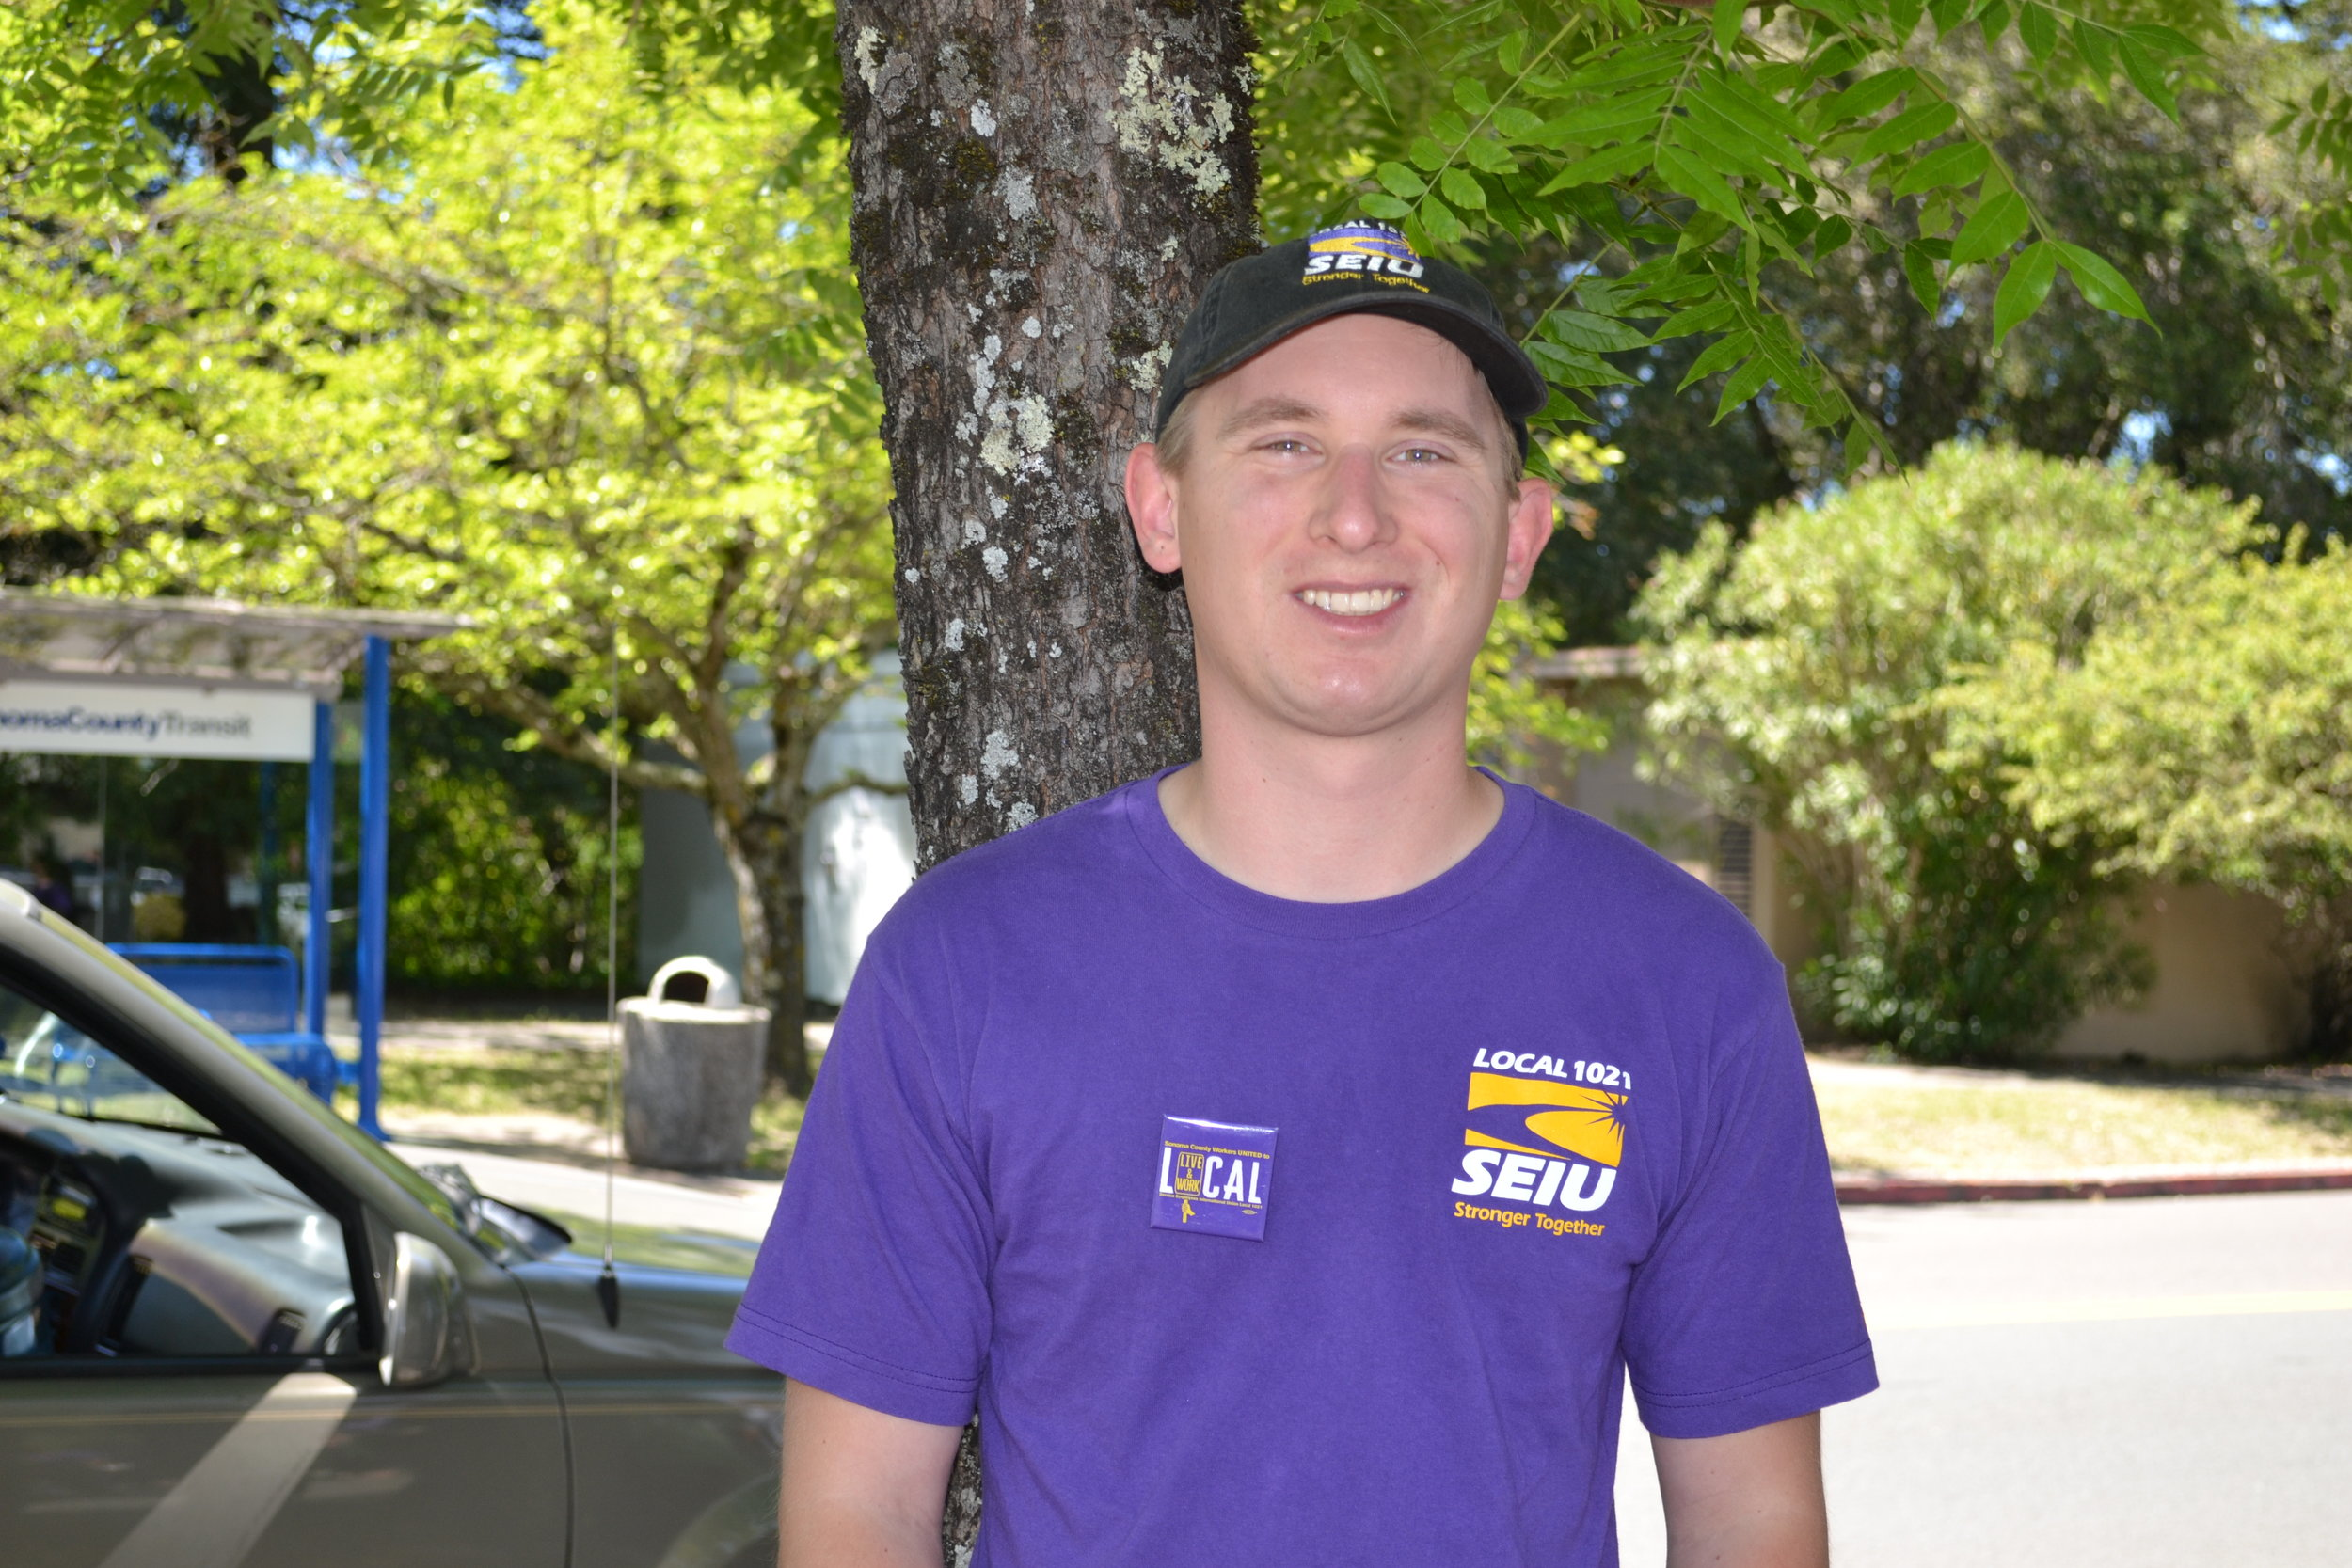 SEIU 1021 member Michael Stanford is a Park Aide in Sonoma County who keeps the parks clean, sells passes, and educates visitors on Sonoma County's natural resources